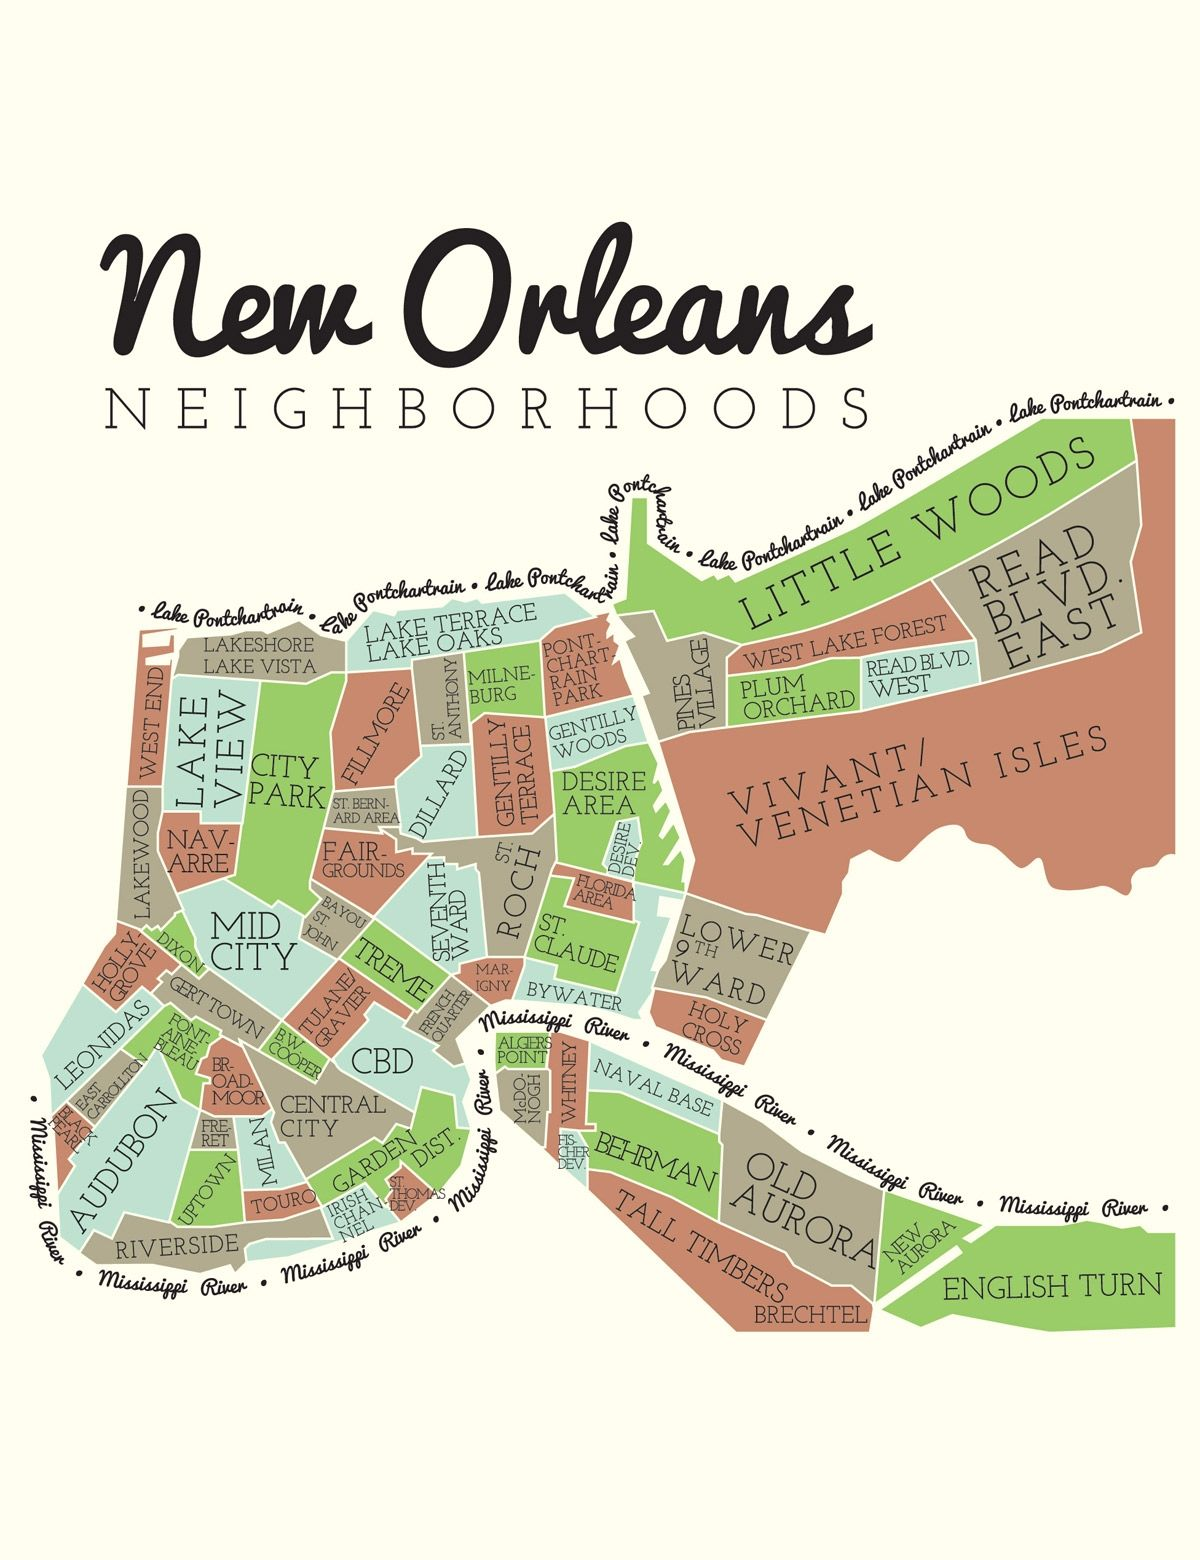 New Orleans Neighborhoods This Doesnt Click Through To The Map - New orleans in us map